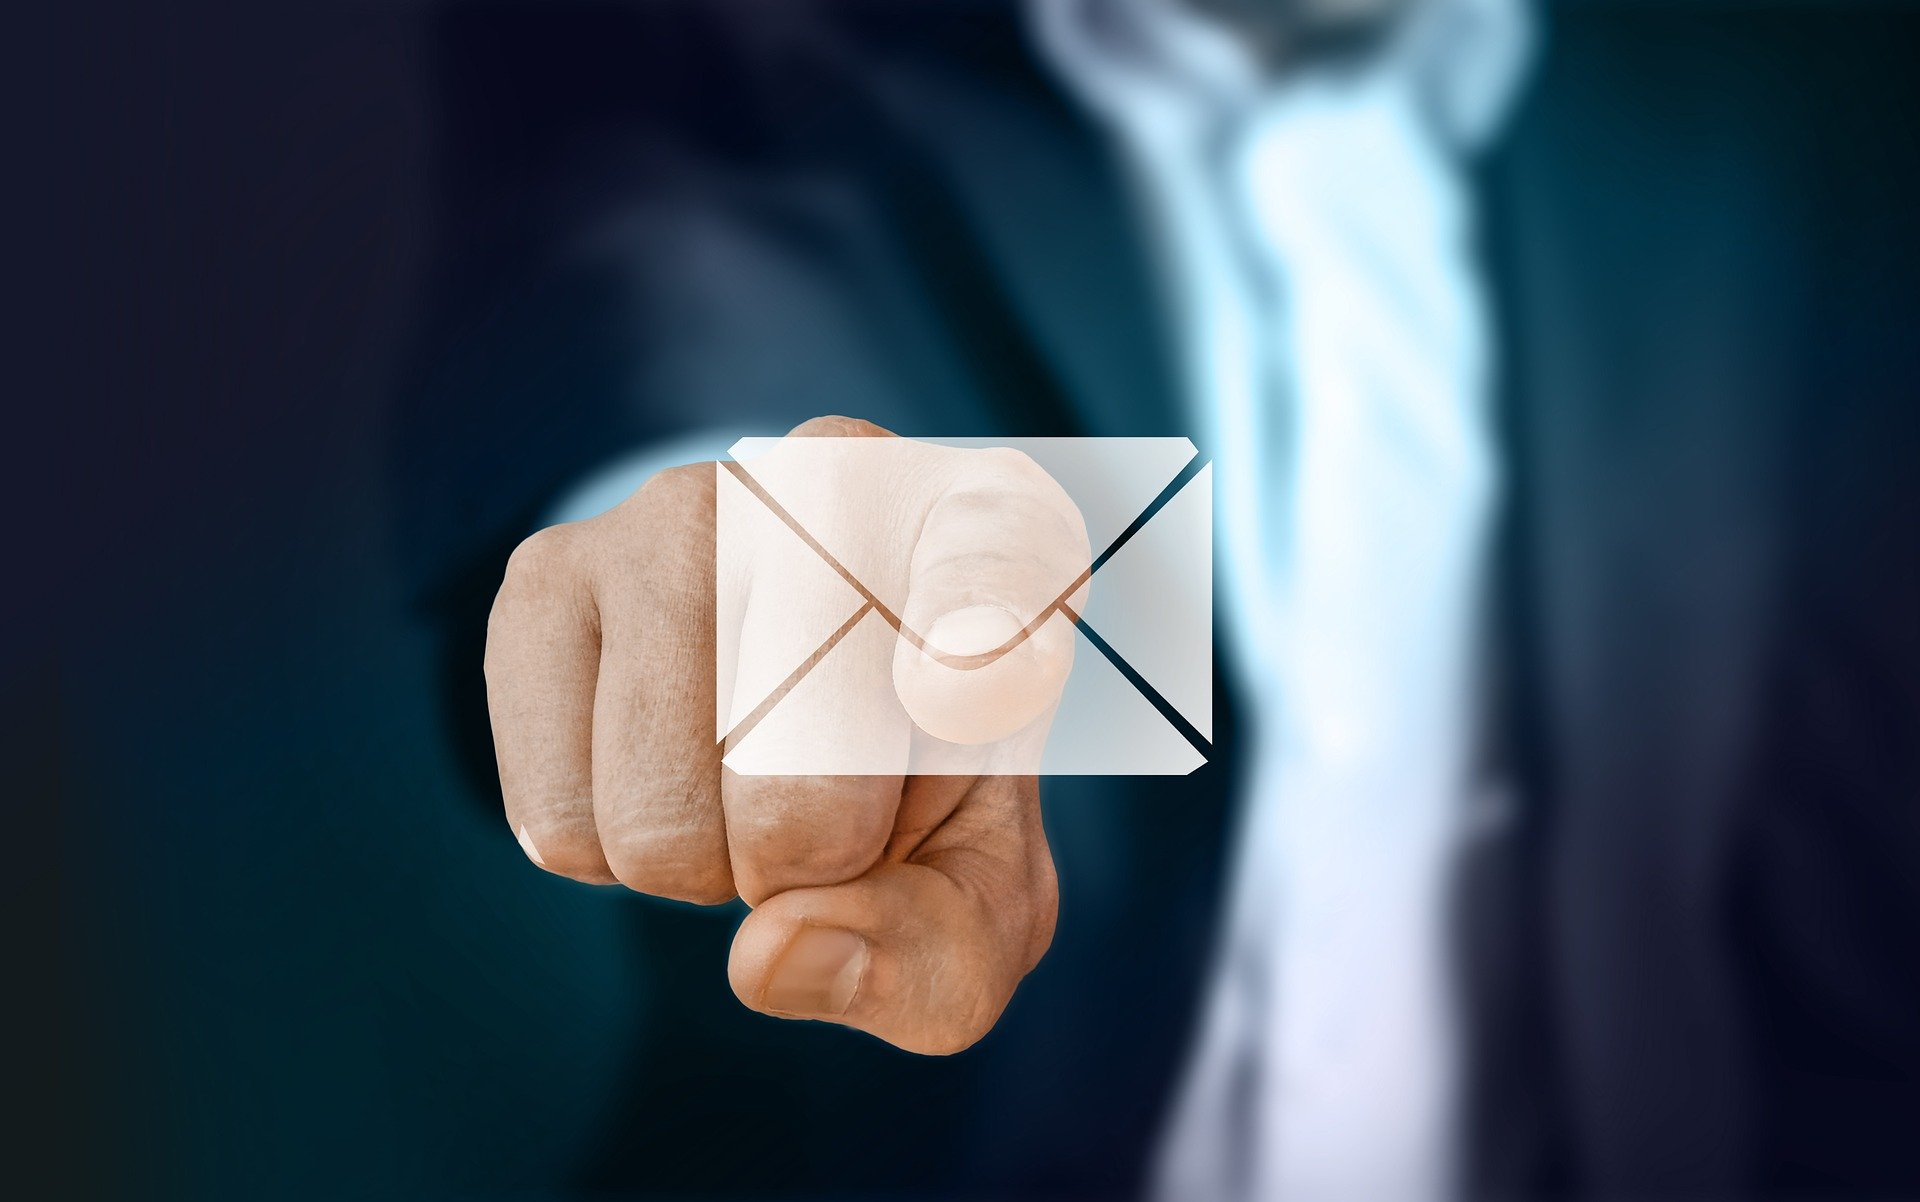 Man in a suit pointing at a white envelope